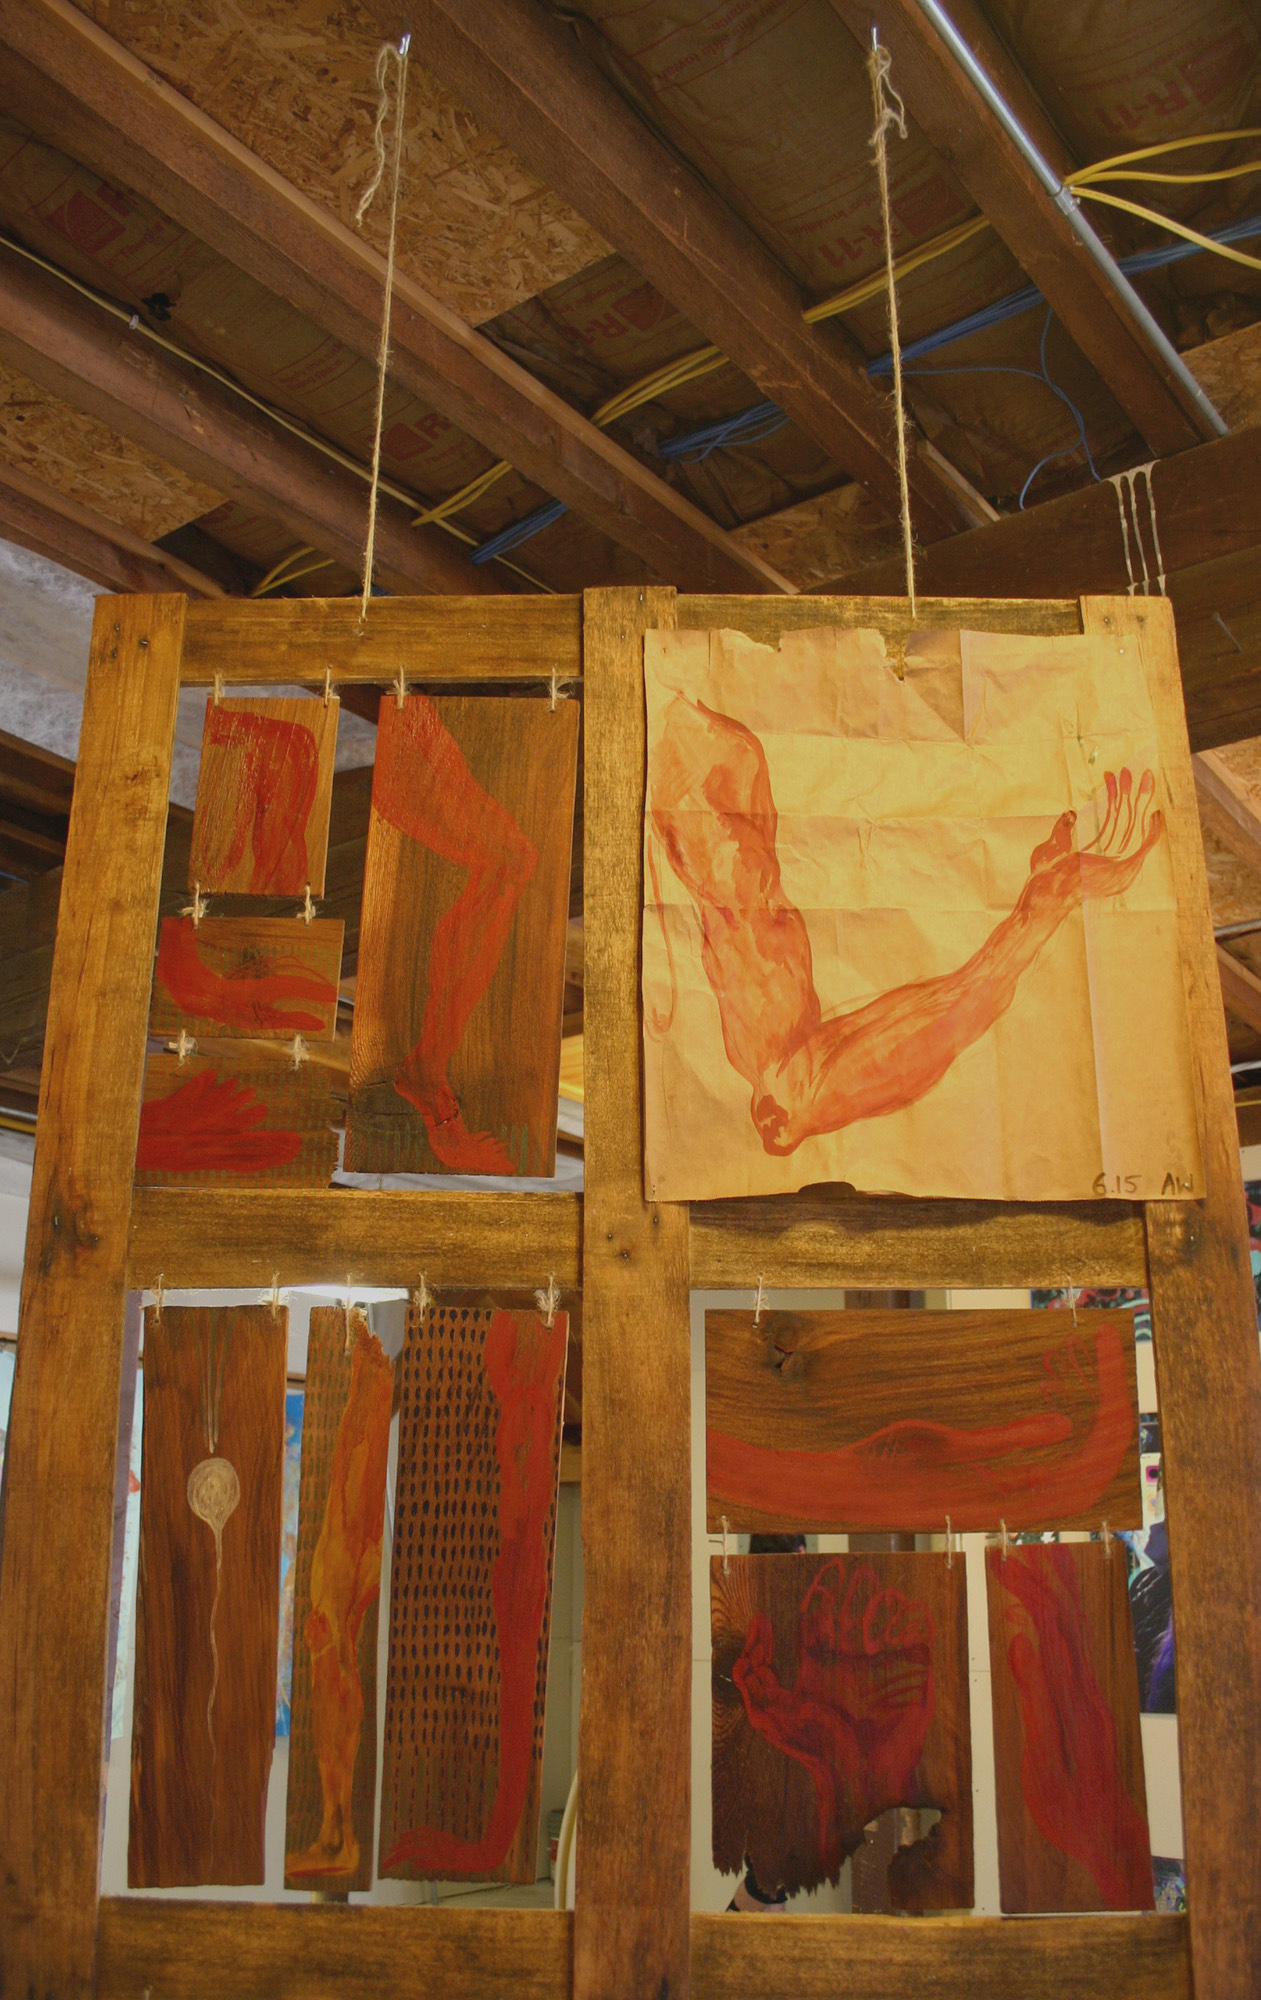 Raw pigment, egg yolk, and graphite on grocery bags & reclaimed wood.  June-July 2016.  The Sanctuary was created while in residence at the Wormfarm Institute.